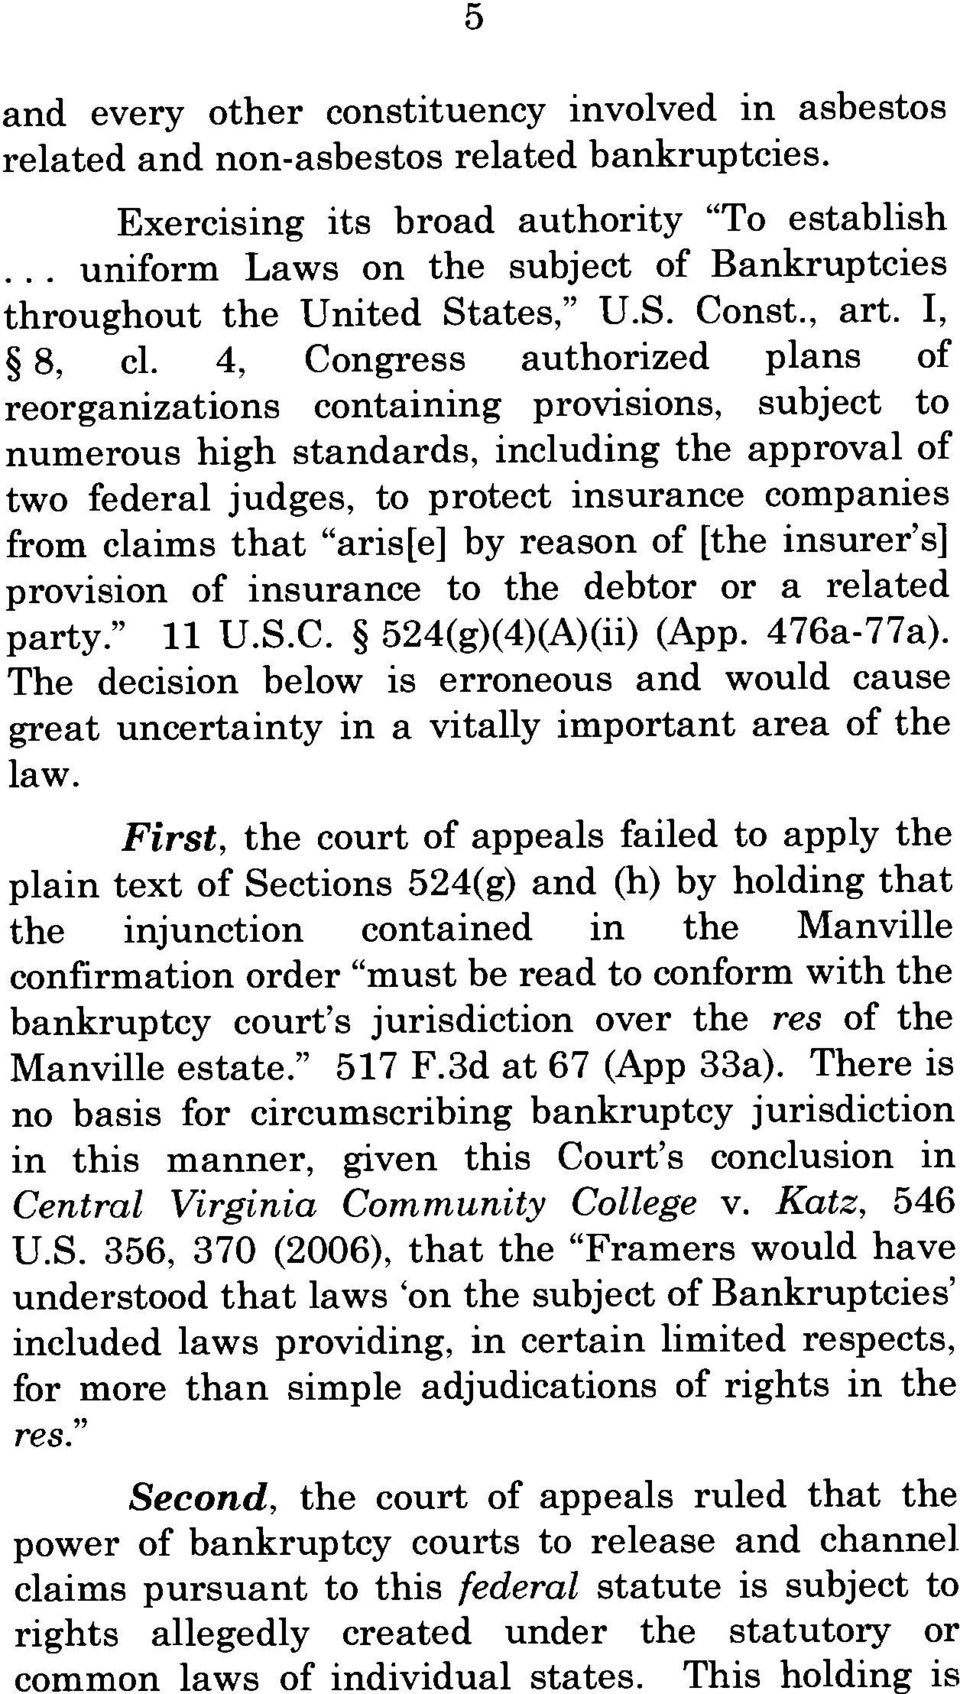 4, Congress authorized plans of reorganizations containing provisions, subject to numerous high standards, including the approval of two federal judges, to protect insurance companies from claims